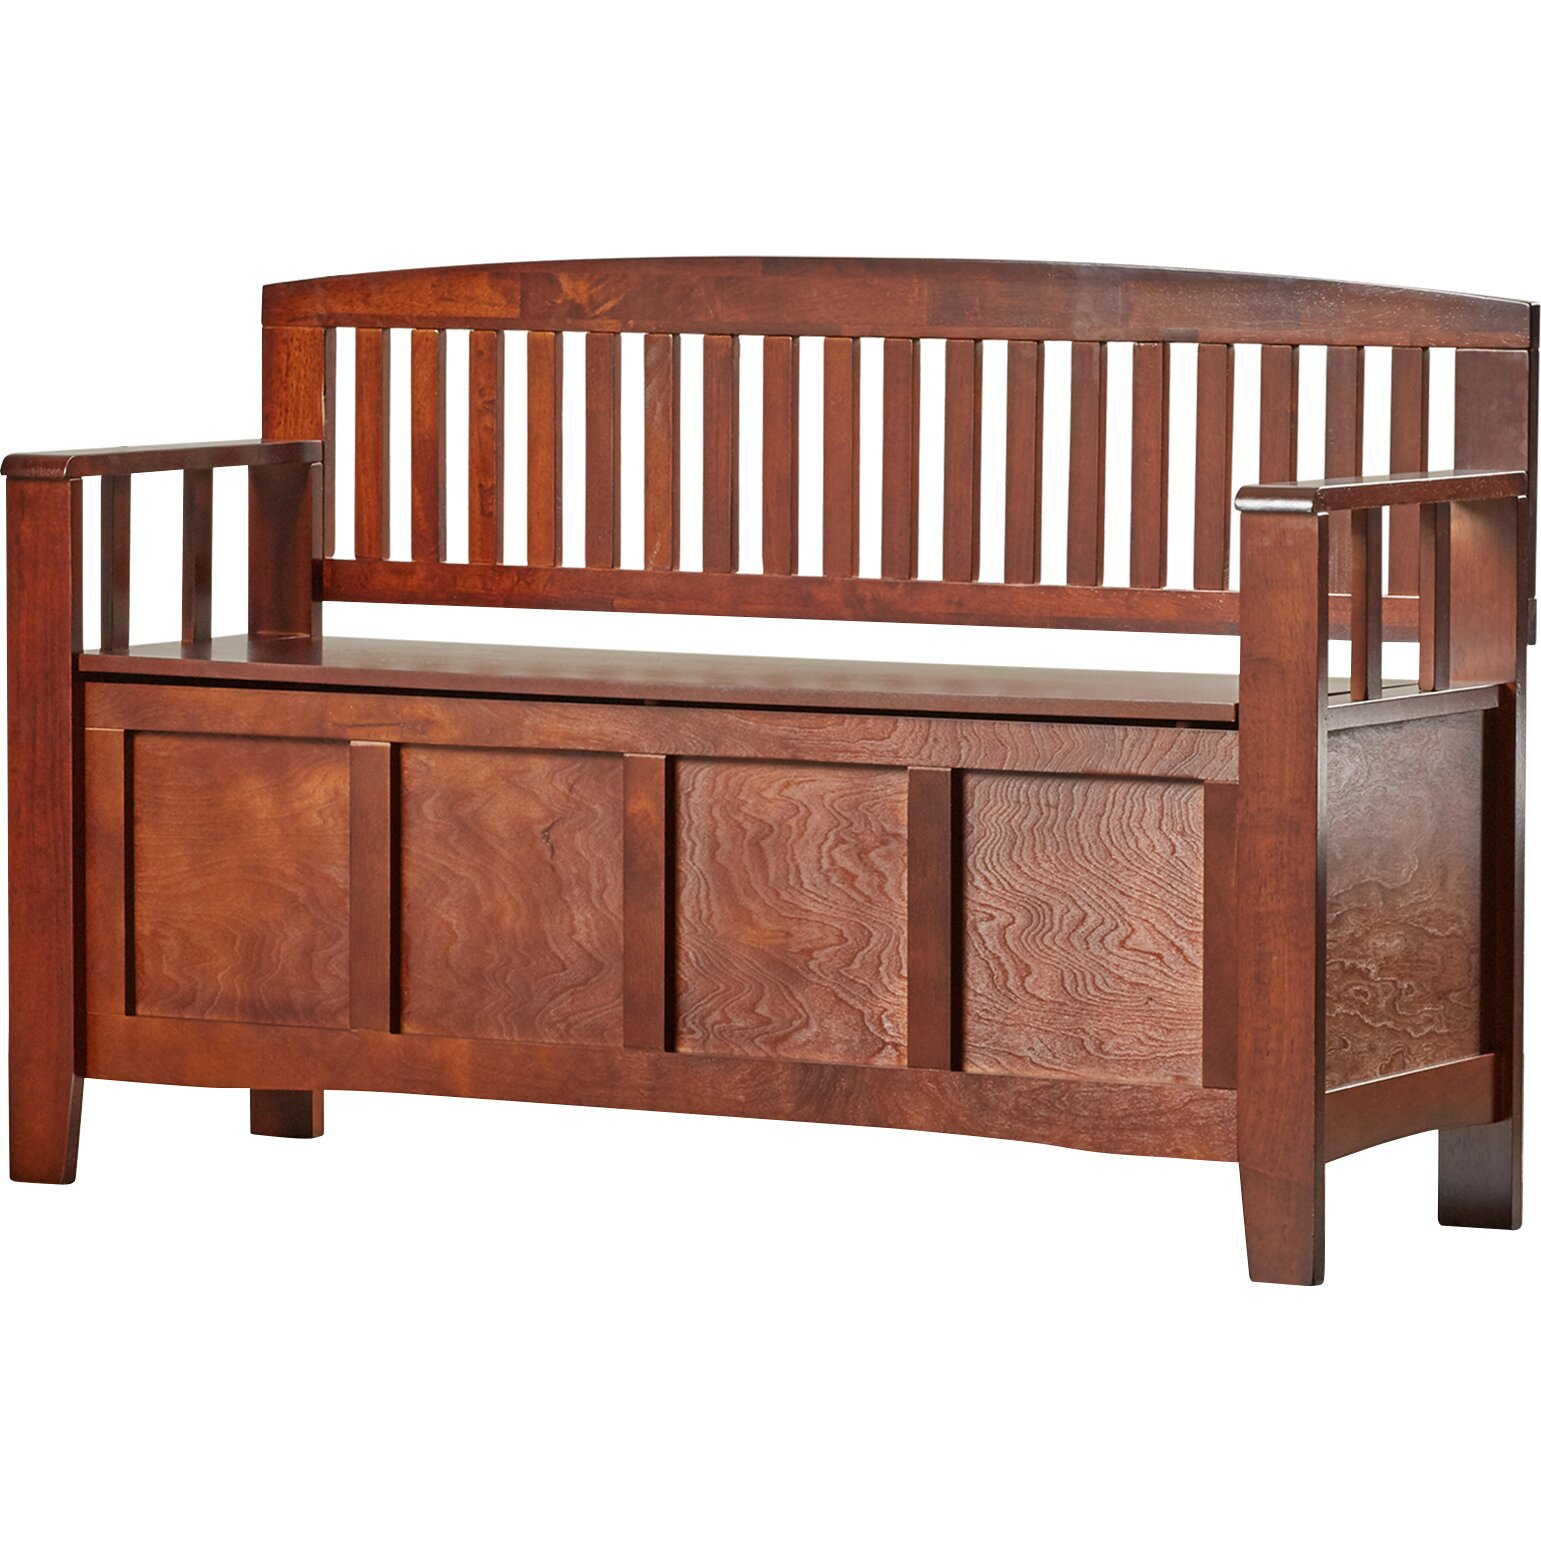 Charlton home bush creek solid wood storage entryway bench Oak bench